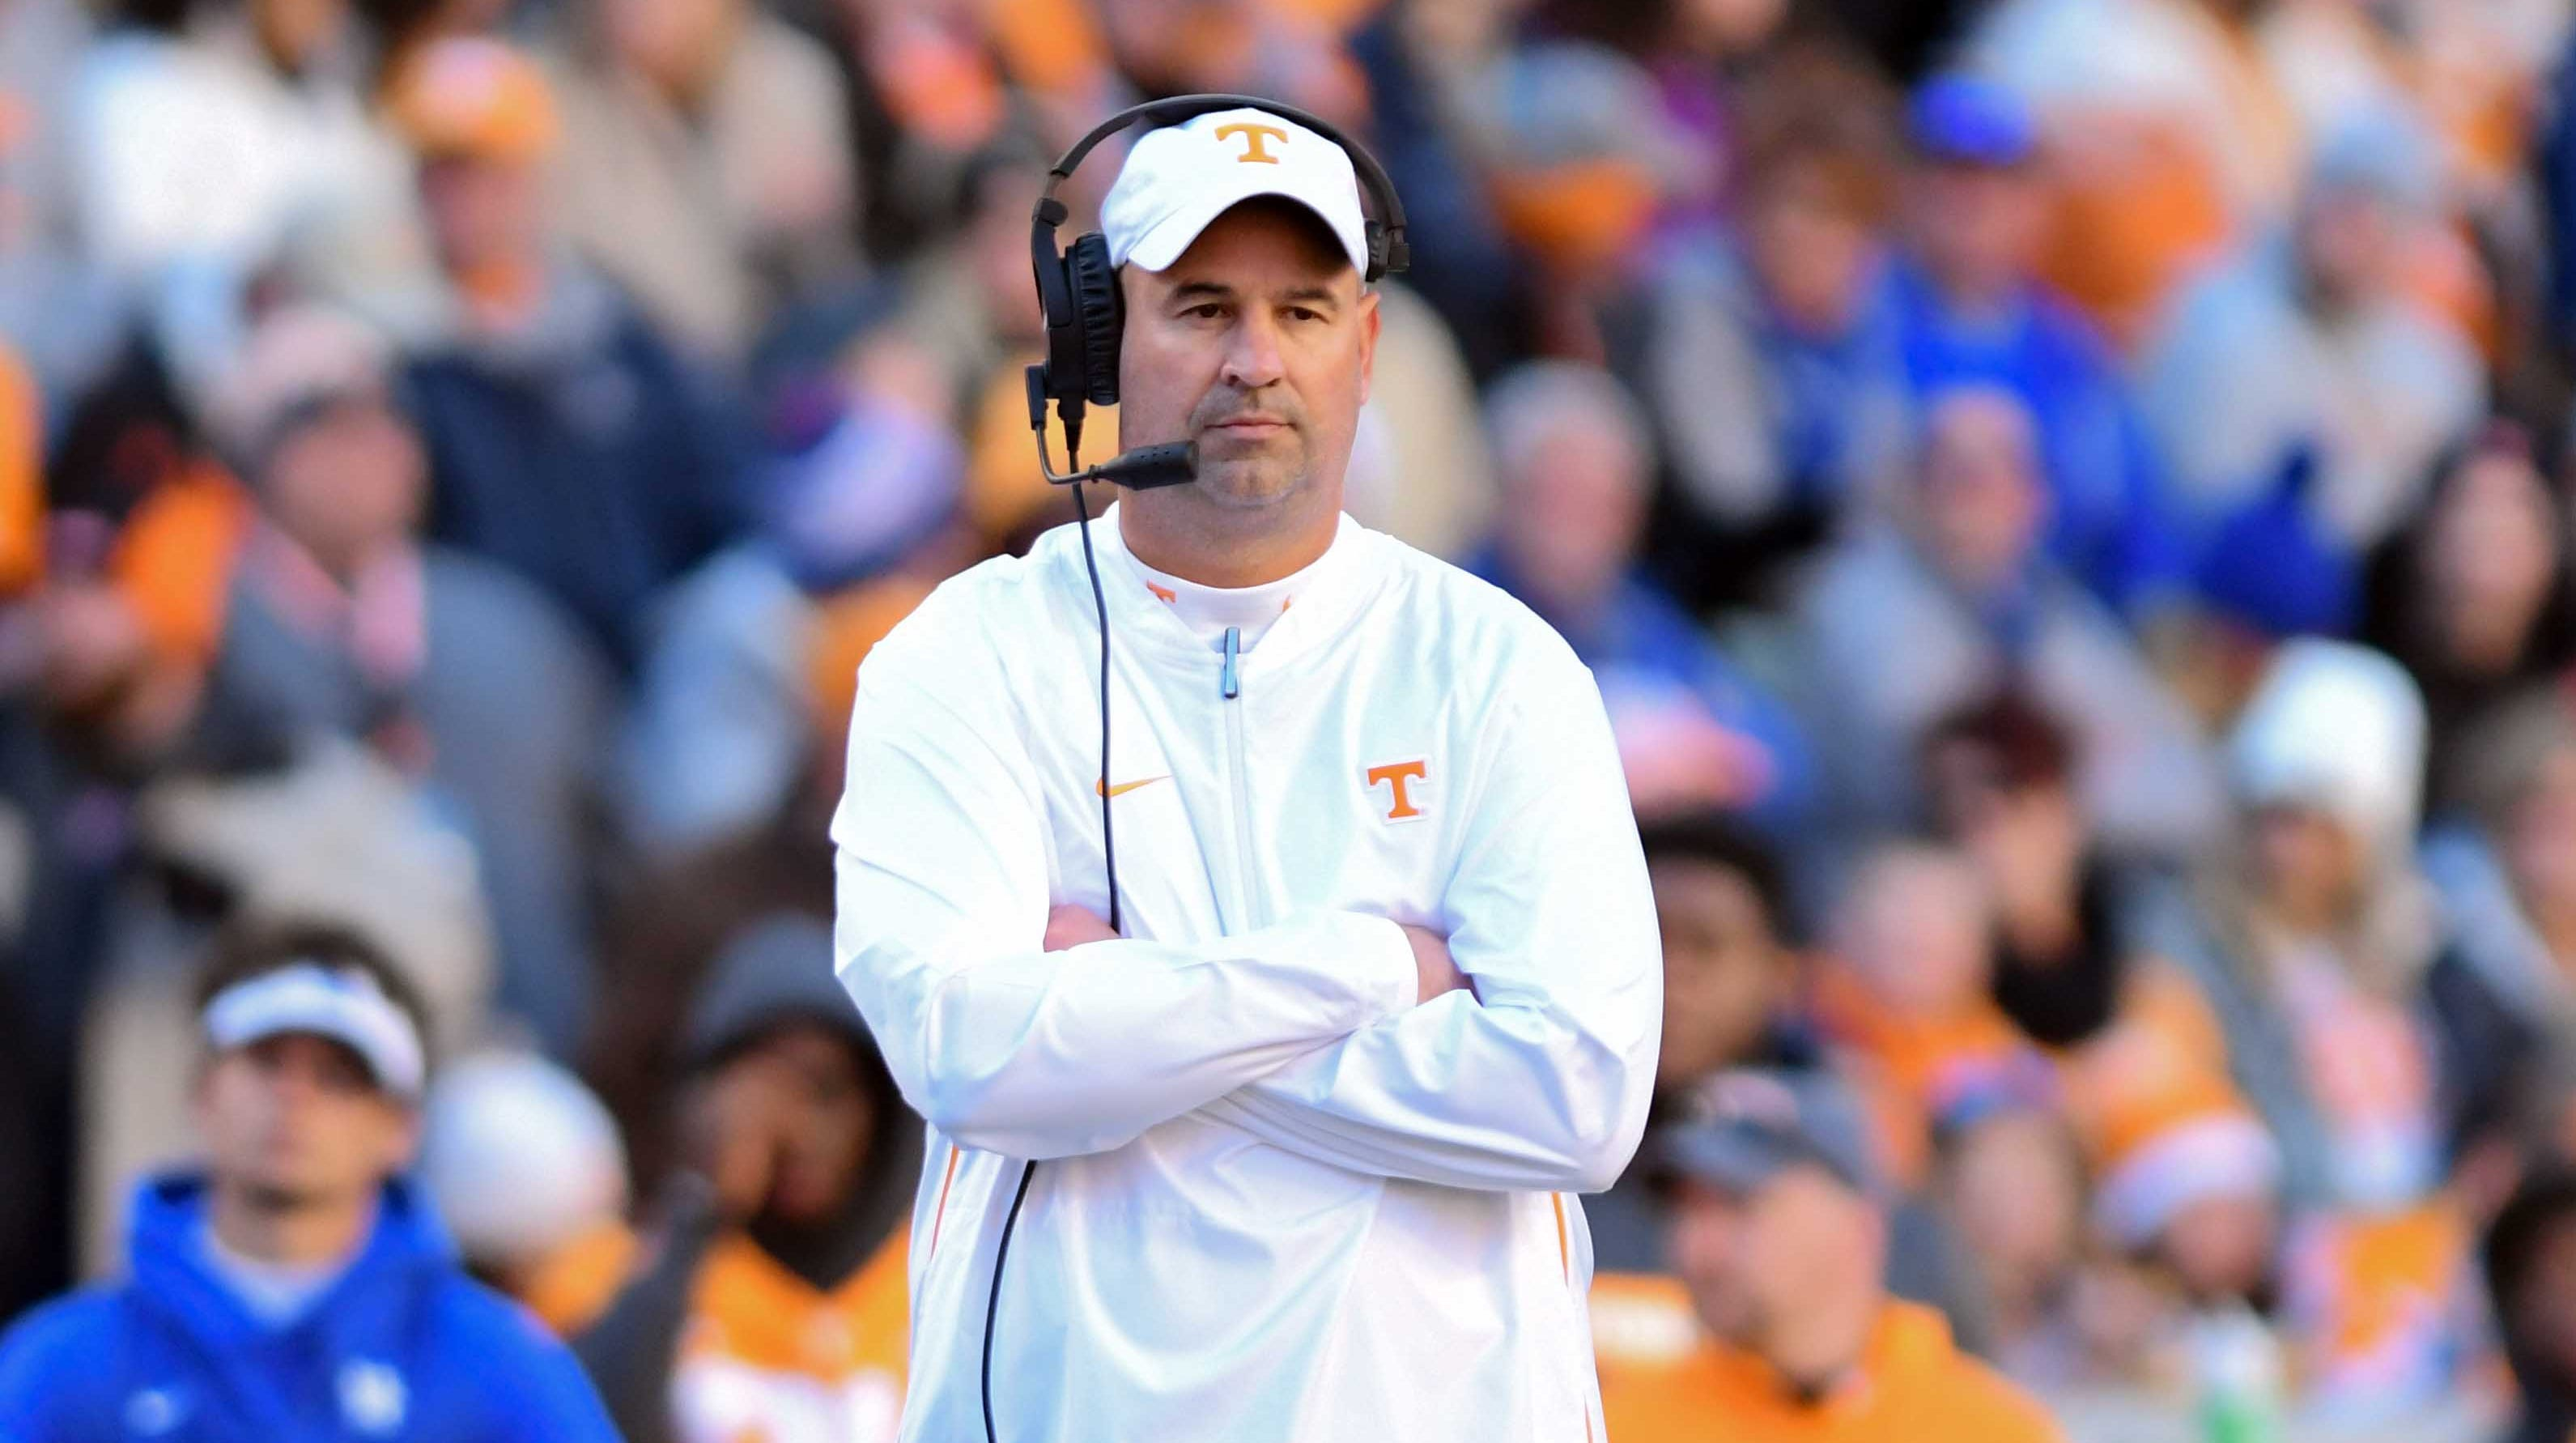 Tennessee Football Jeremy Pruitt Commits Ncaa Violation With Tweet